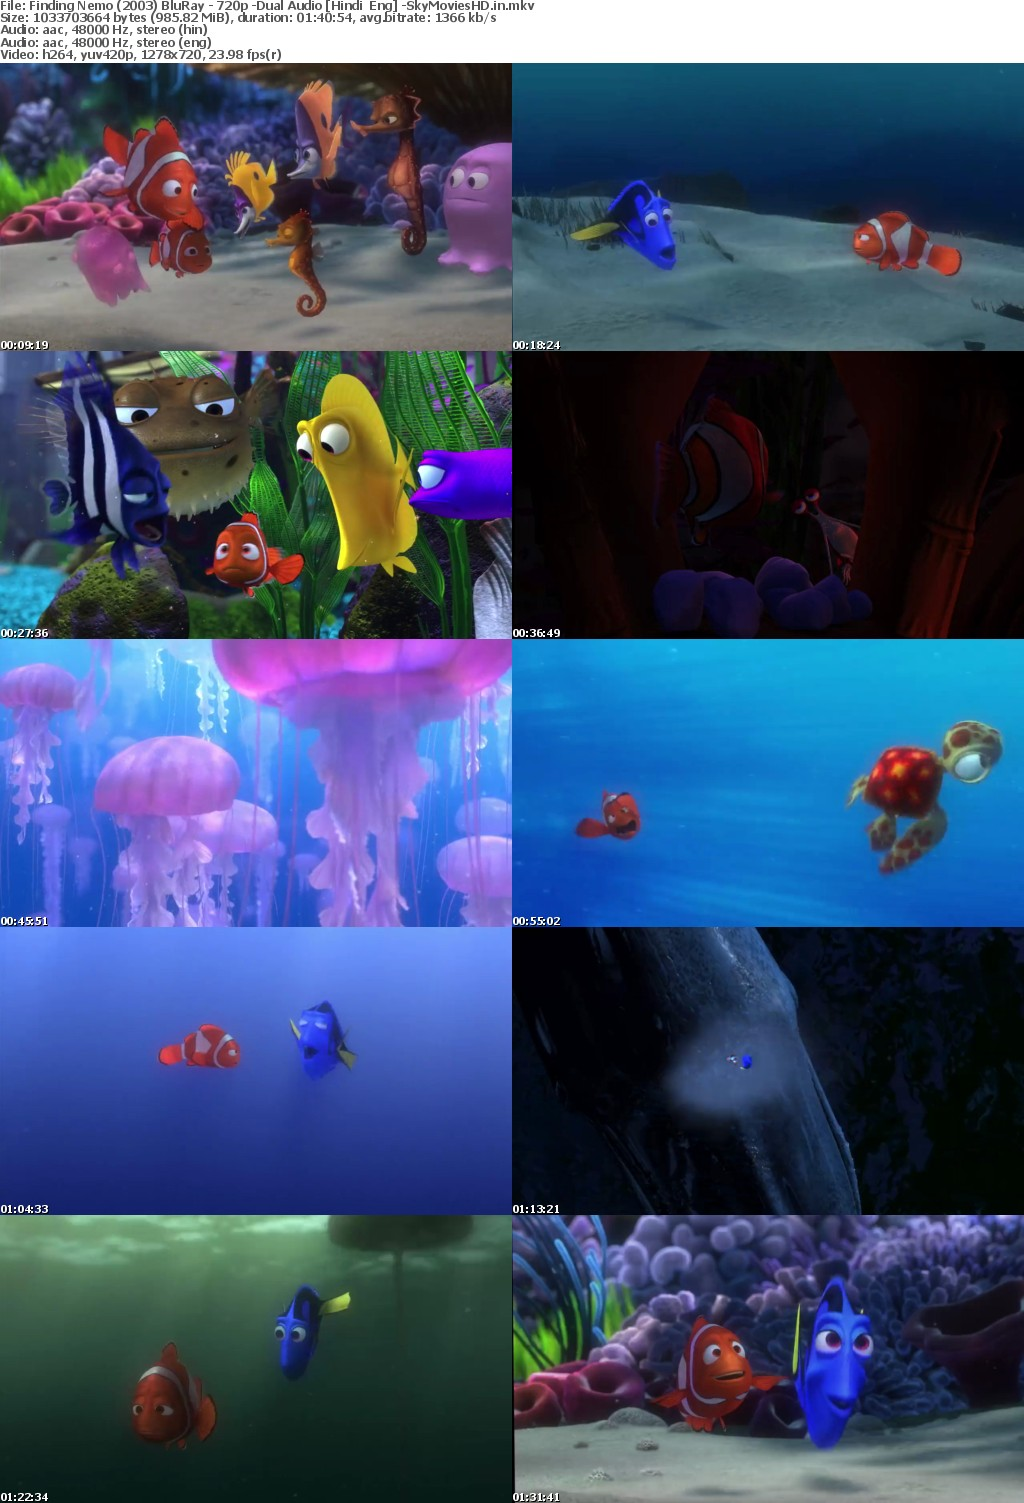 Finding Nemo (2003) BluRay 720p Dual Audio x264 Hindi + Eng 900MB -SM